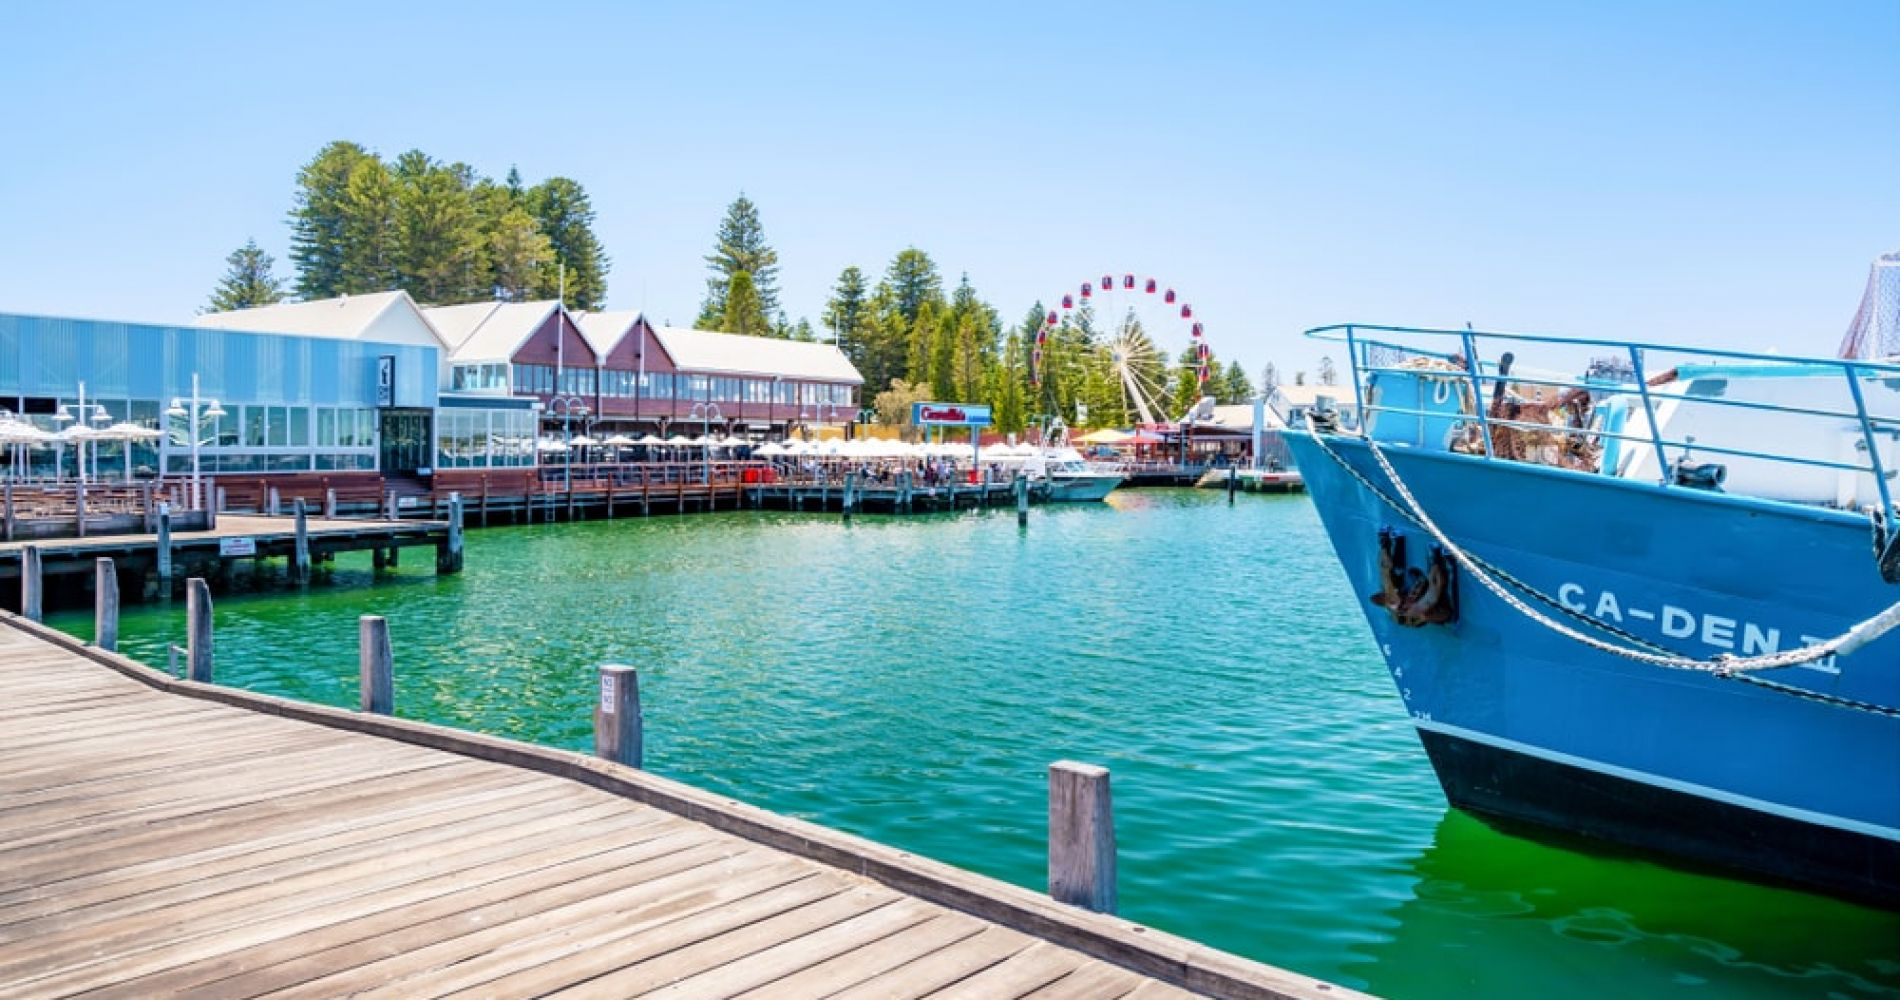 Check out the Quirky Old Port in Fremantle